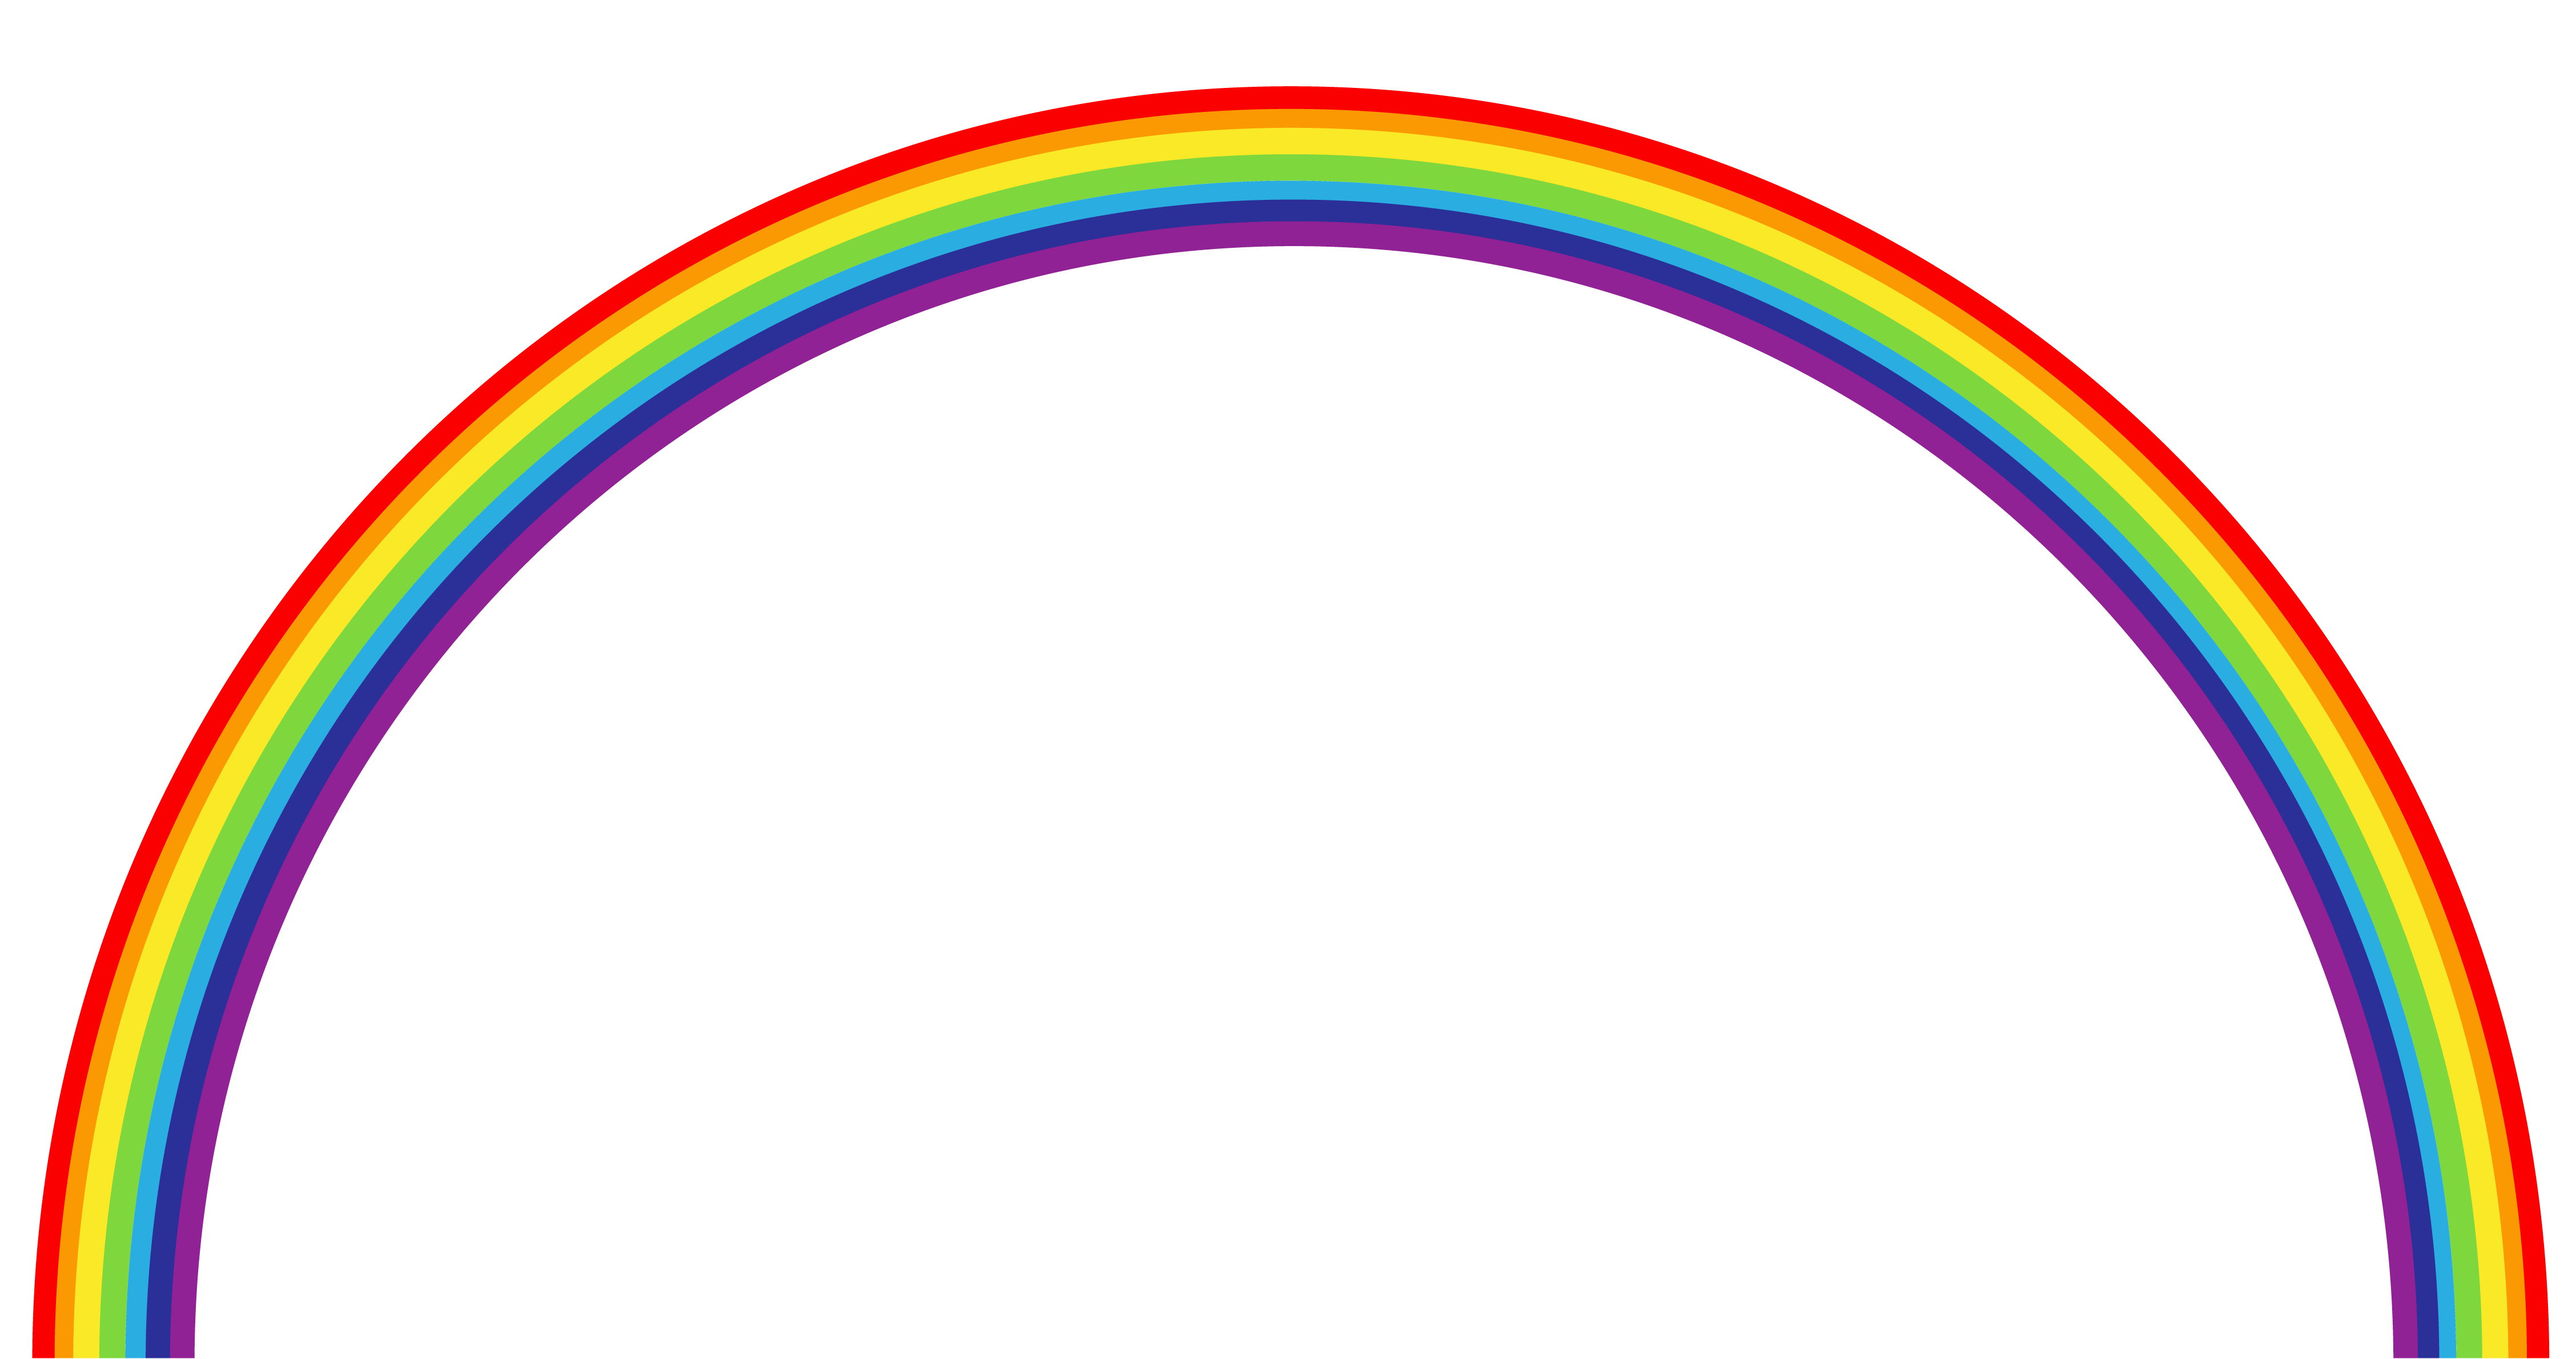 Real rainbow png. Transparent clipart gallery yopriceville